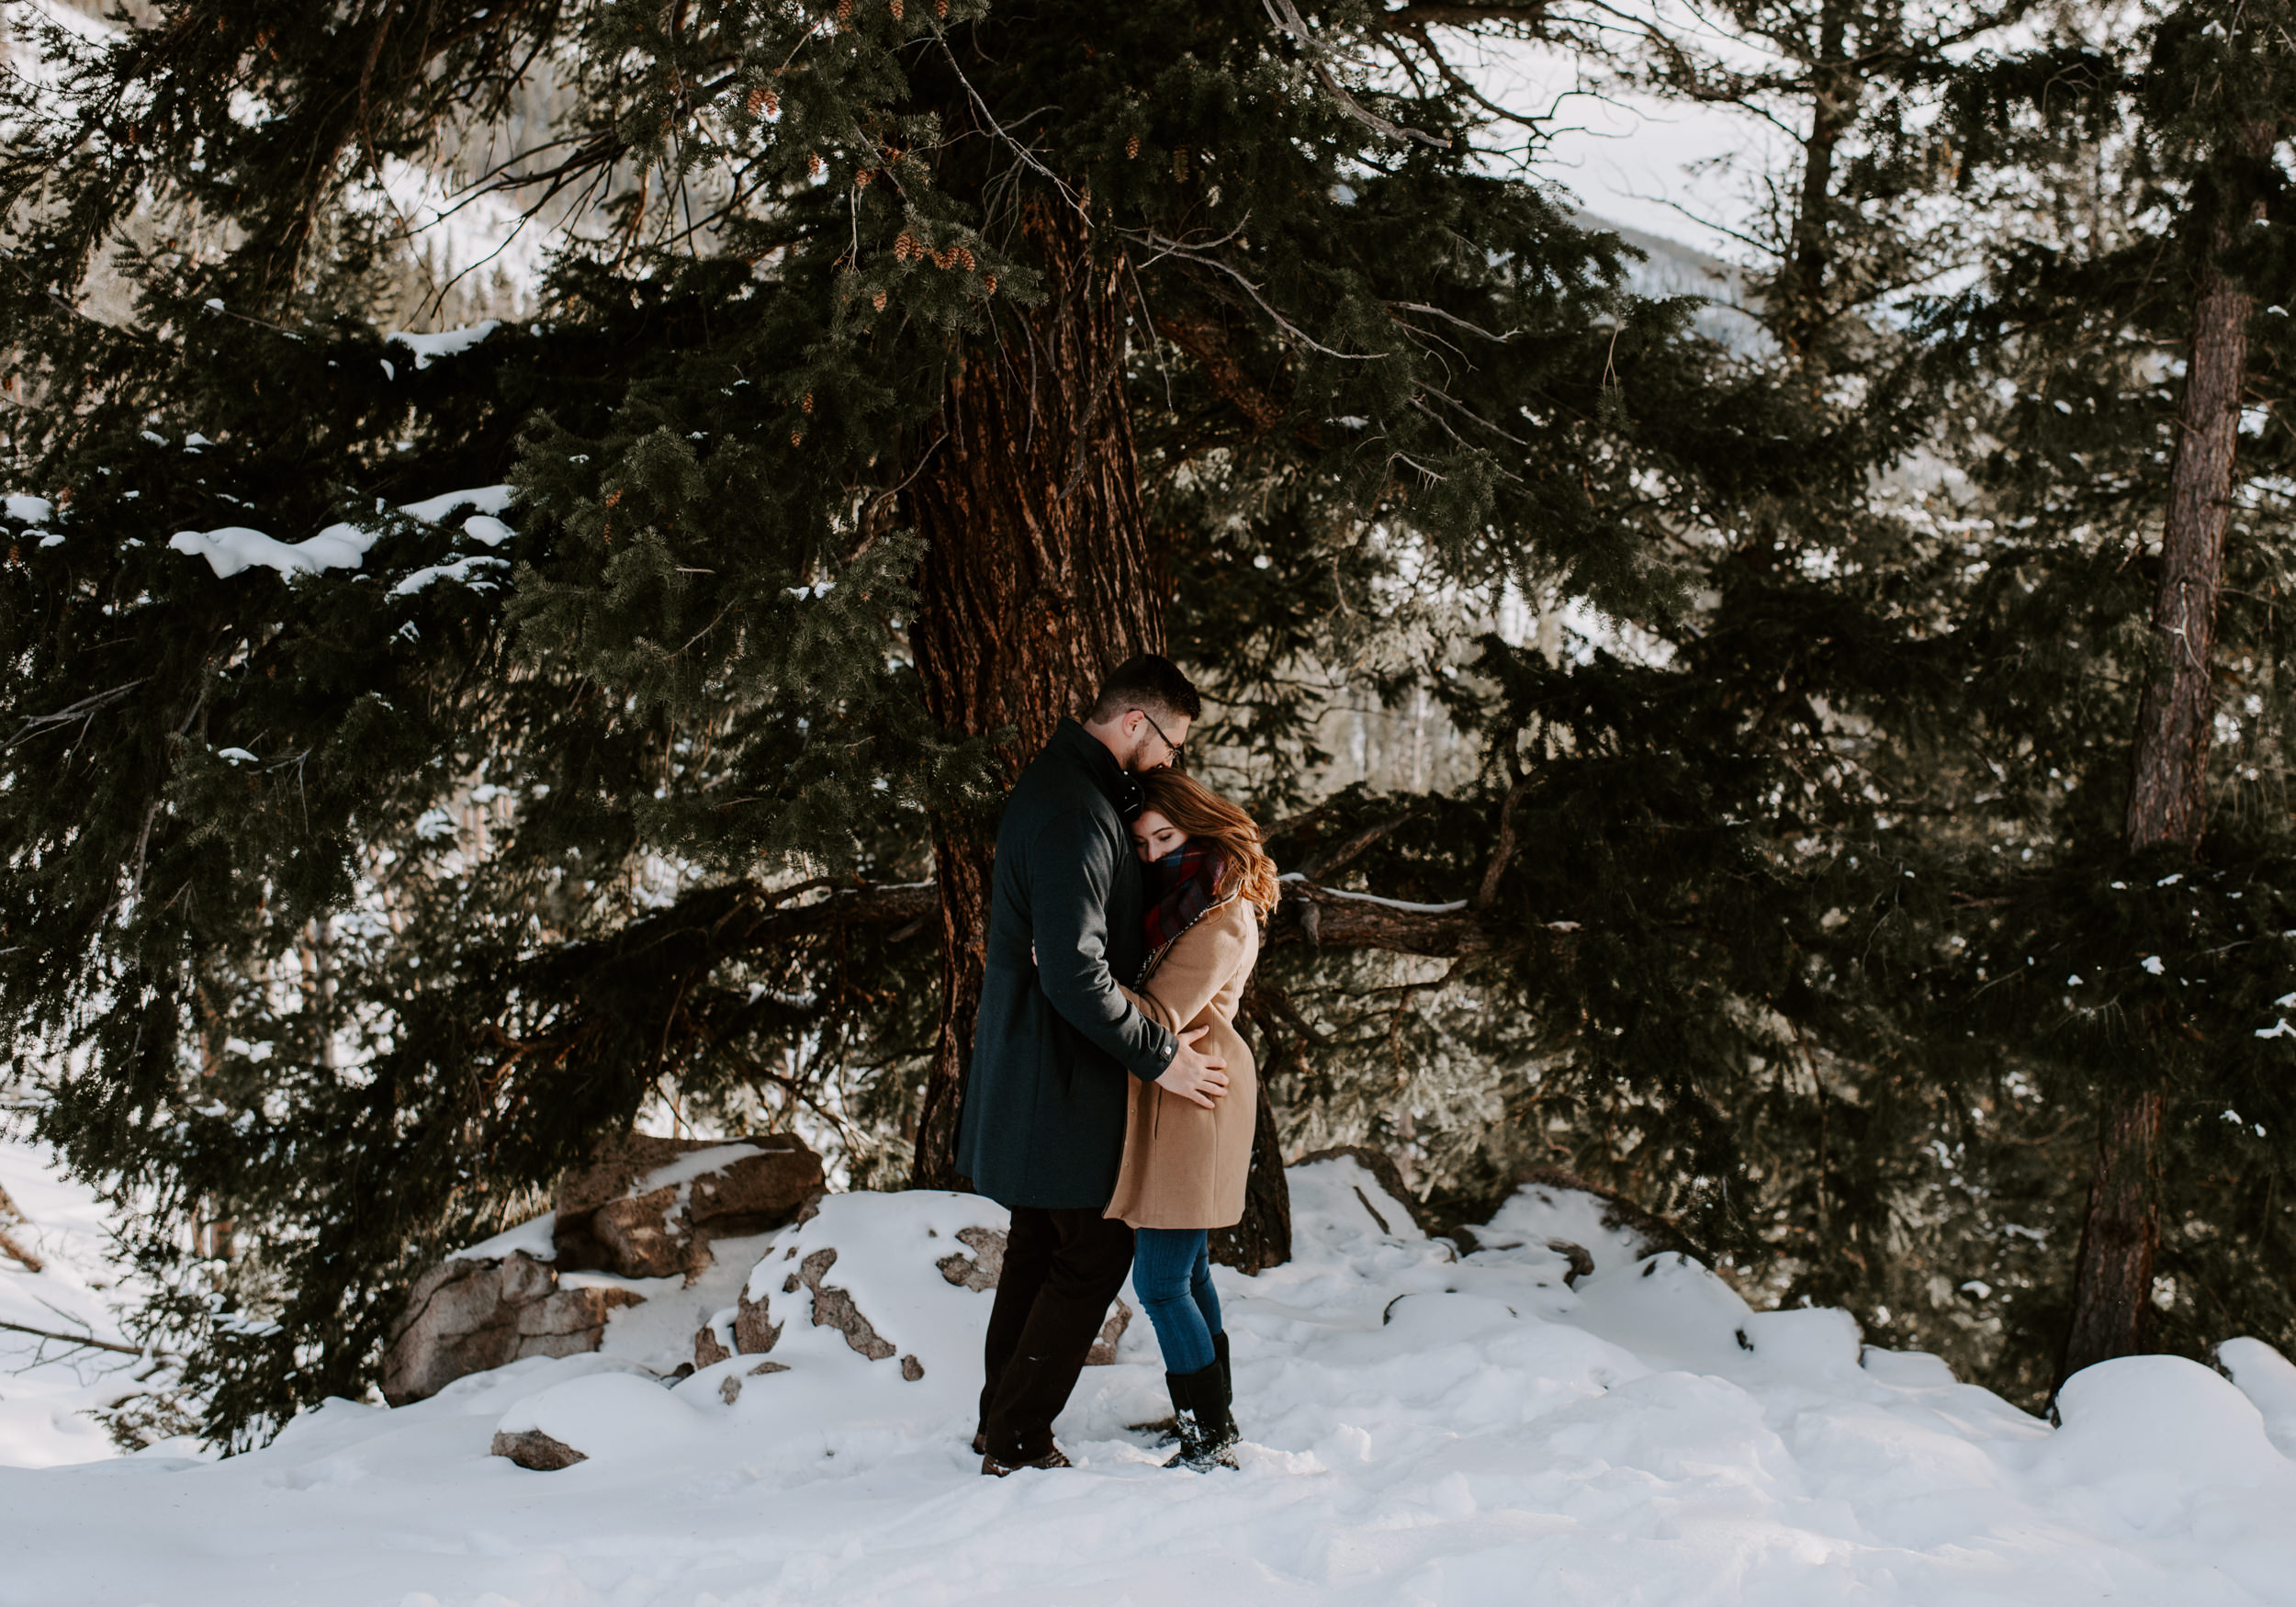 Snowy winter engagement session in Dillon, Colorado at Sapphire Point Overlook.